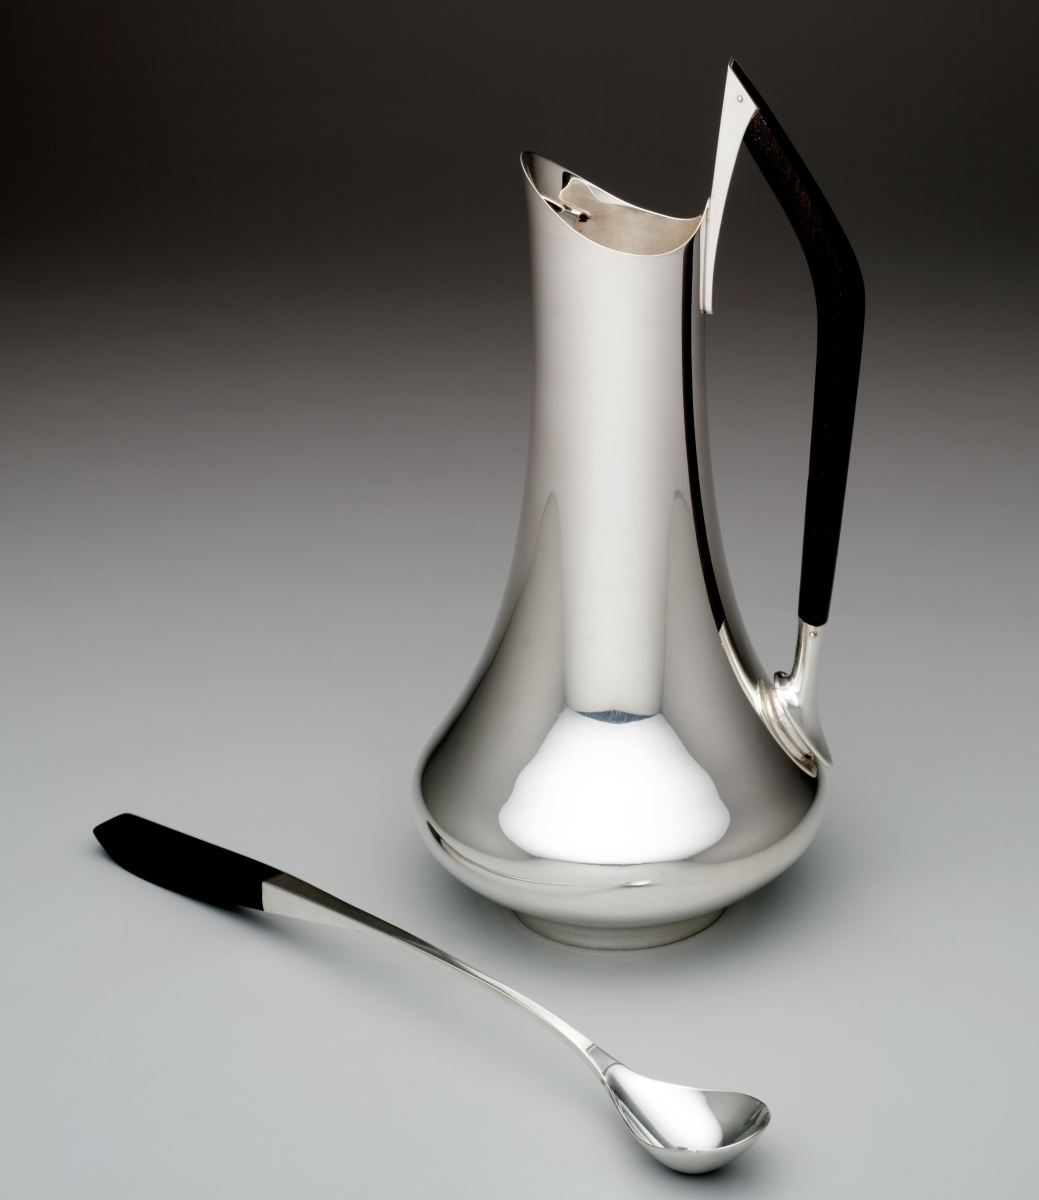 """Circa '70"" pitcher-mixer with mixer spoon, Gorham Manufacturing Company, manufacturer, Providence, R.I., designed 1960. Silver and ebony."